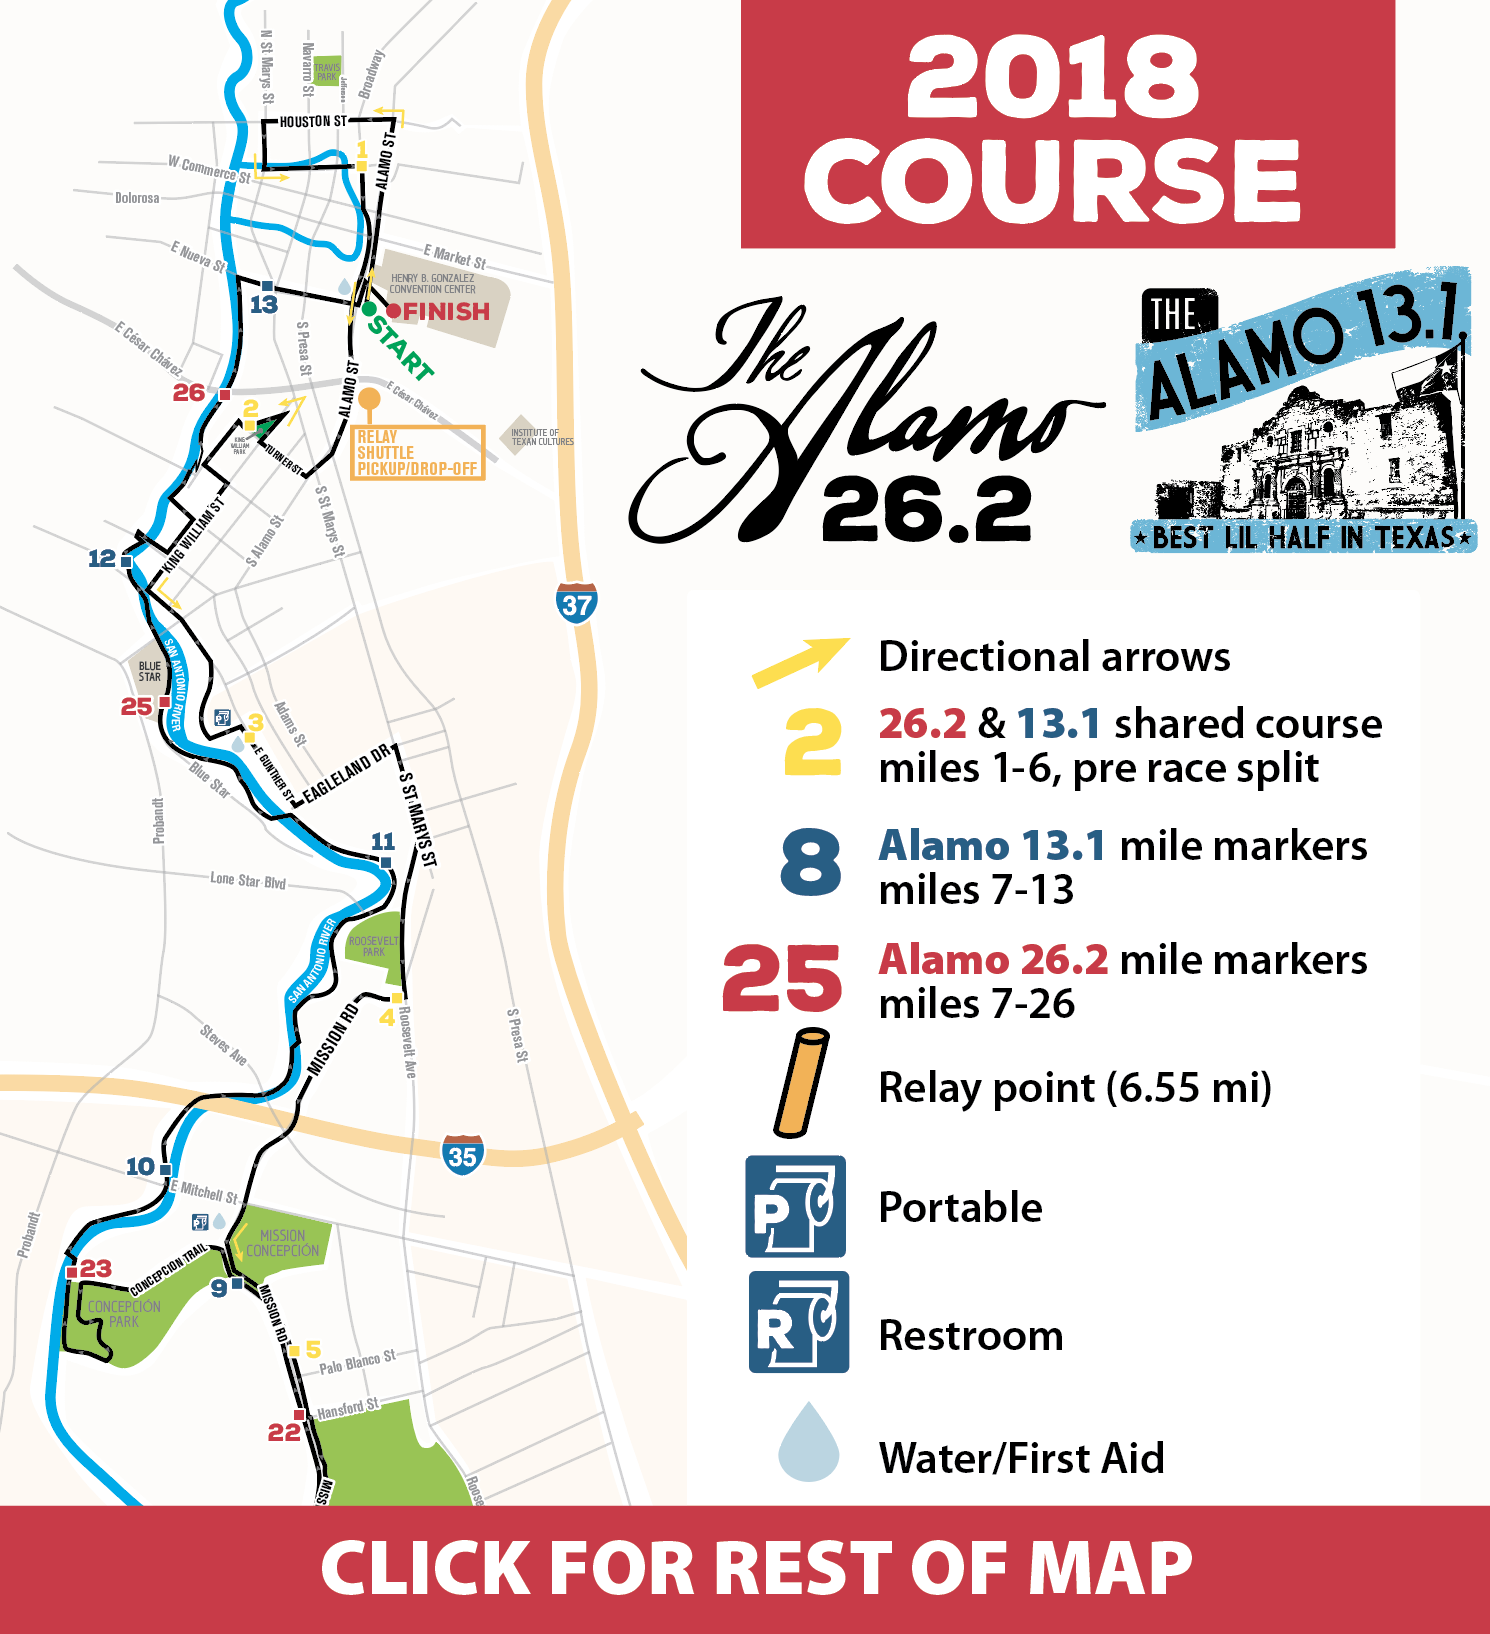 Alamo 13.1 and 26.2 course map